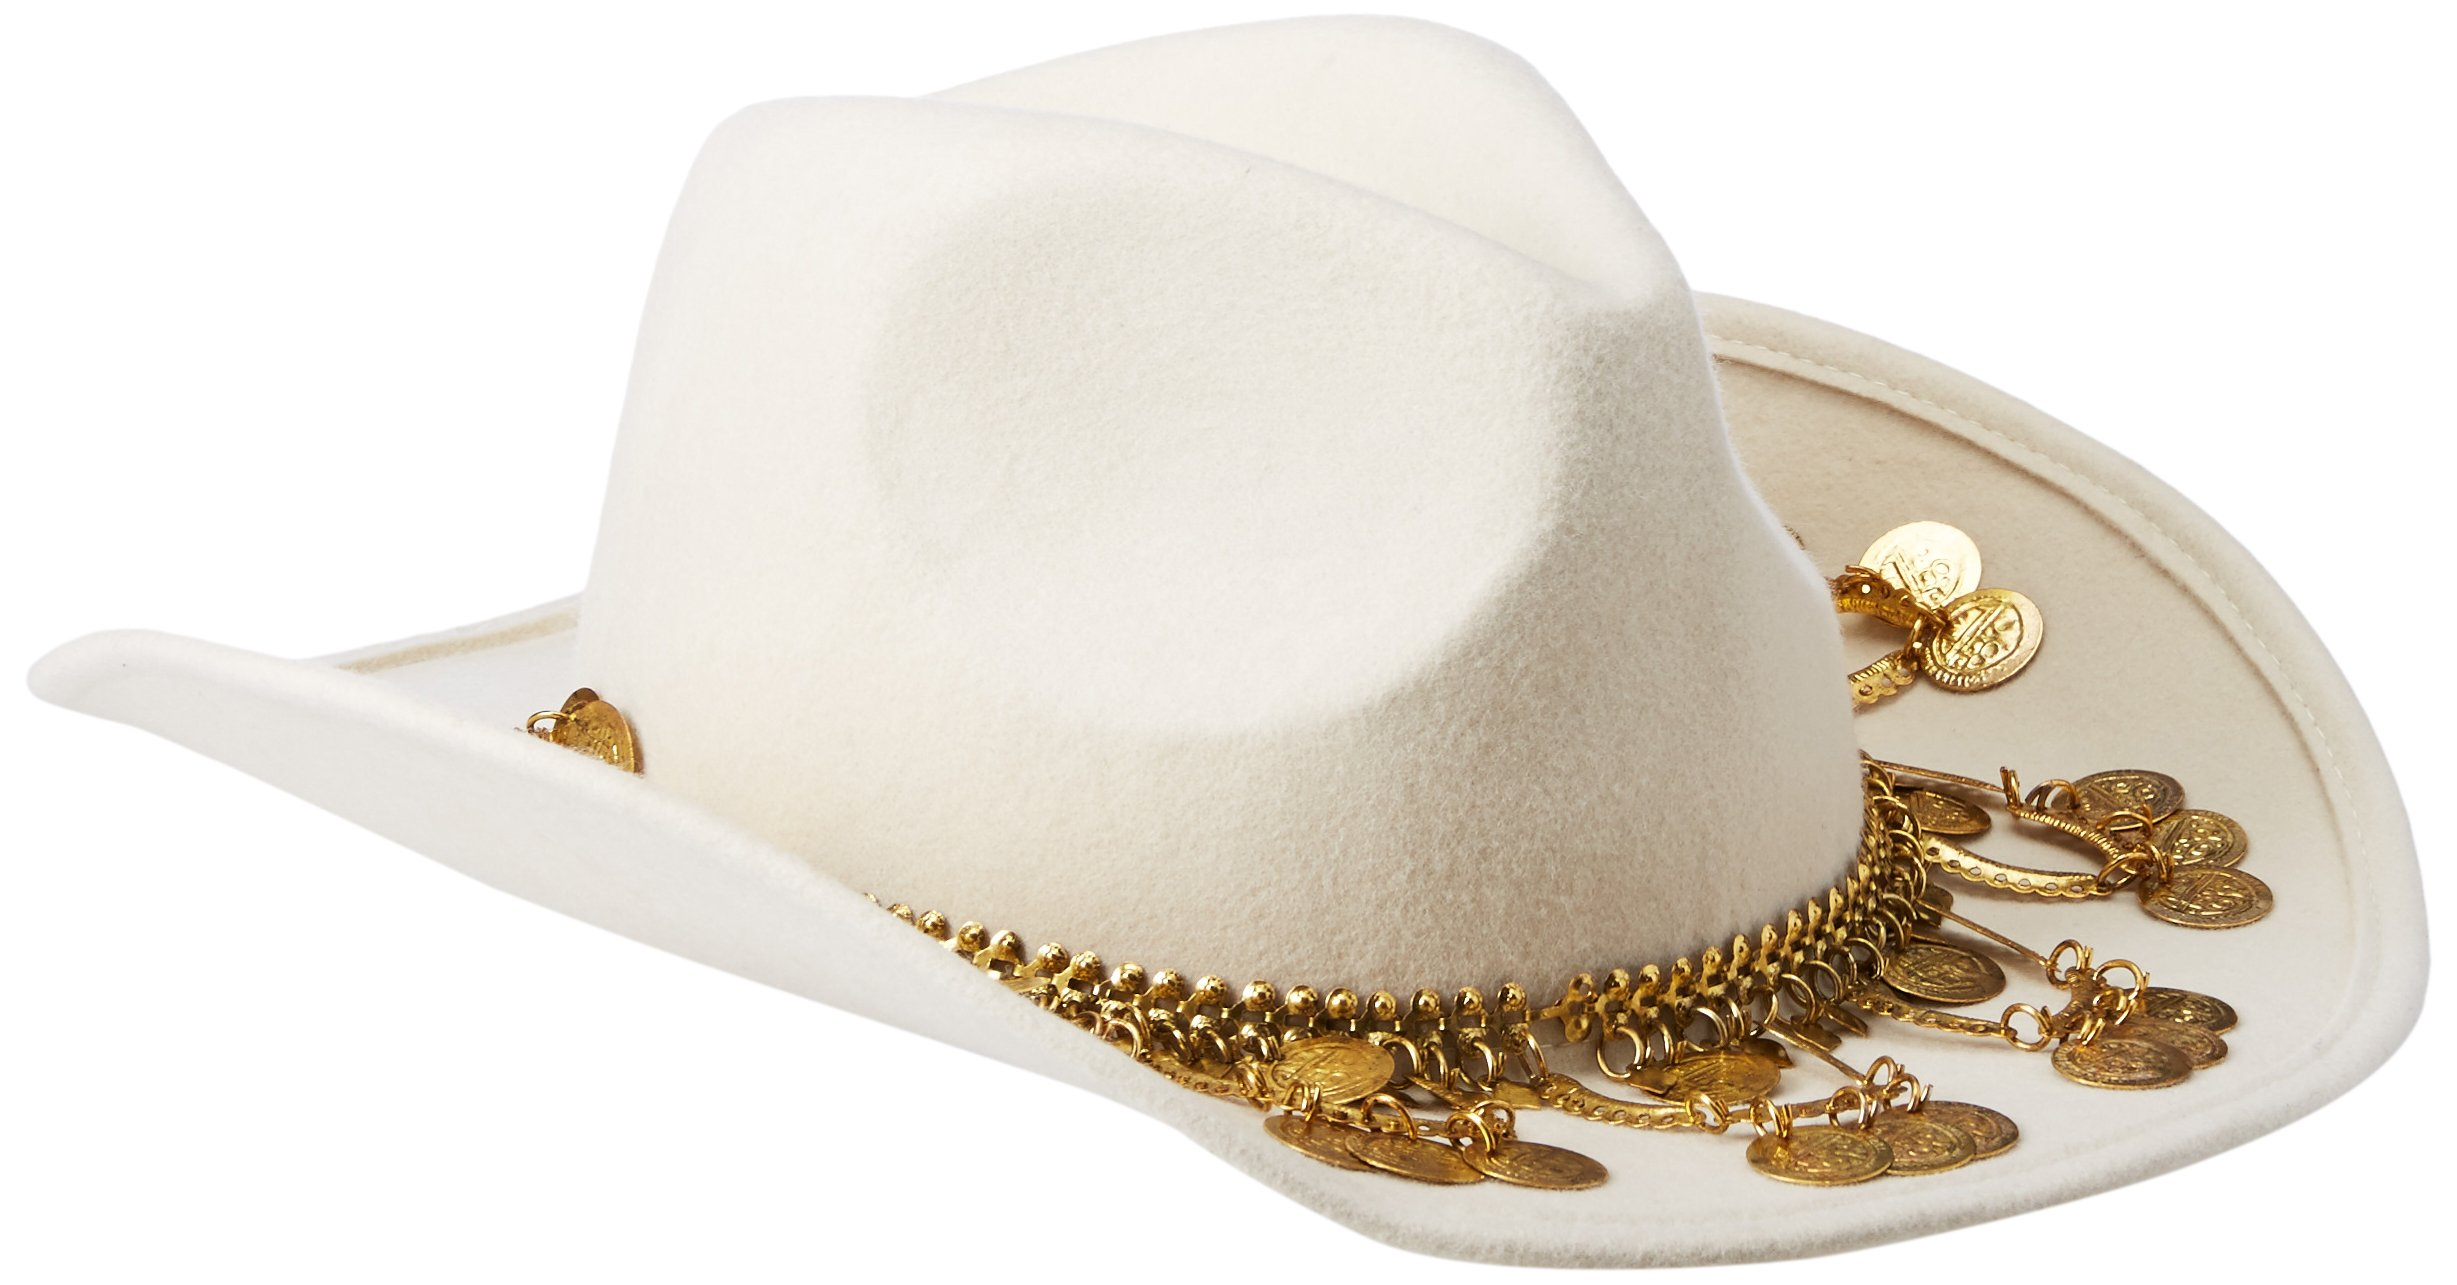 Gottex Women's Taj Felt Sun Hat with Exotic Chain Trim, Rated UPF 50+ for Max Sun Protection, White/Gold, One Size